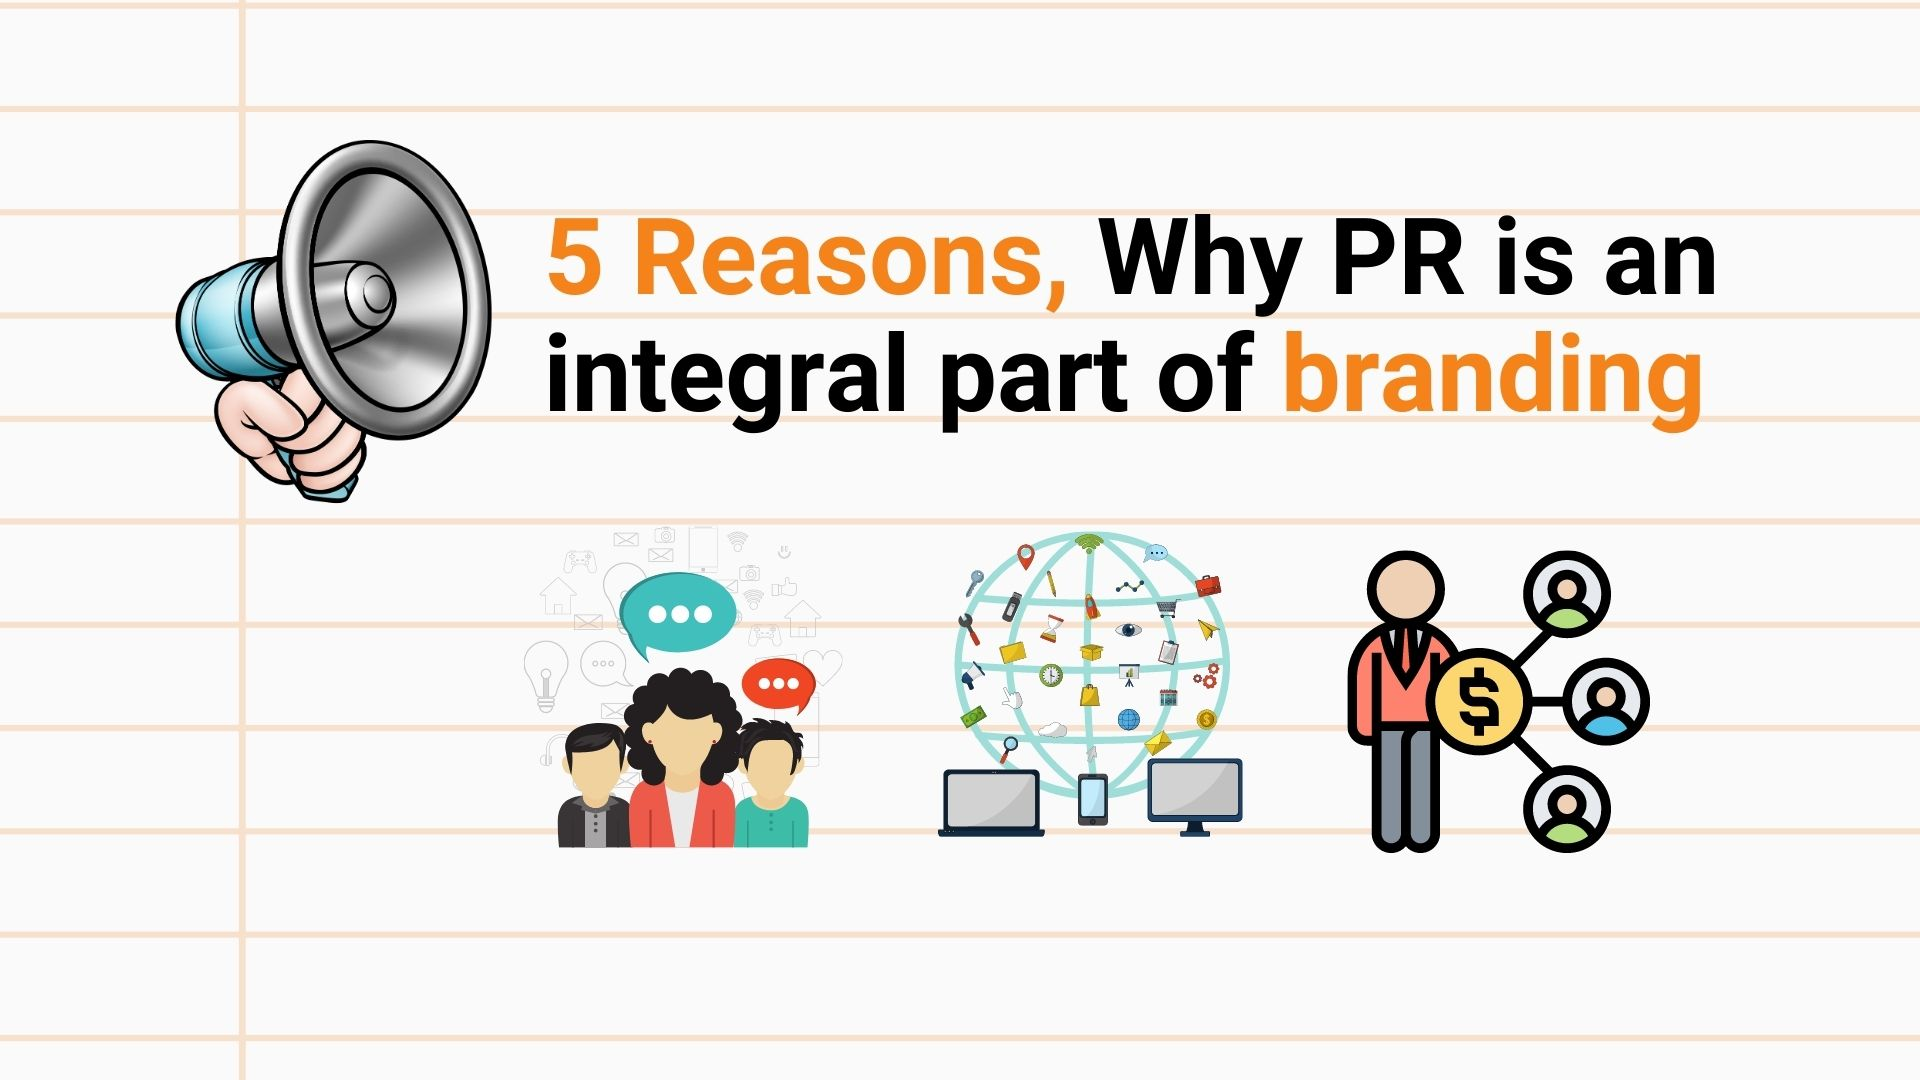 5 Reasons, Why PR is an integral part of branding